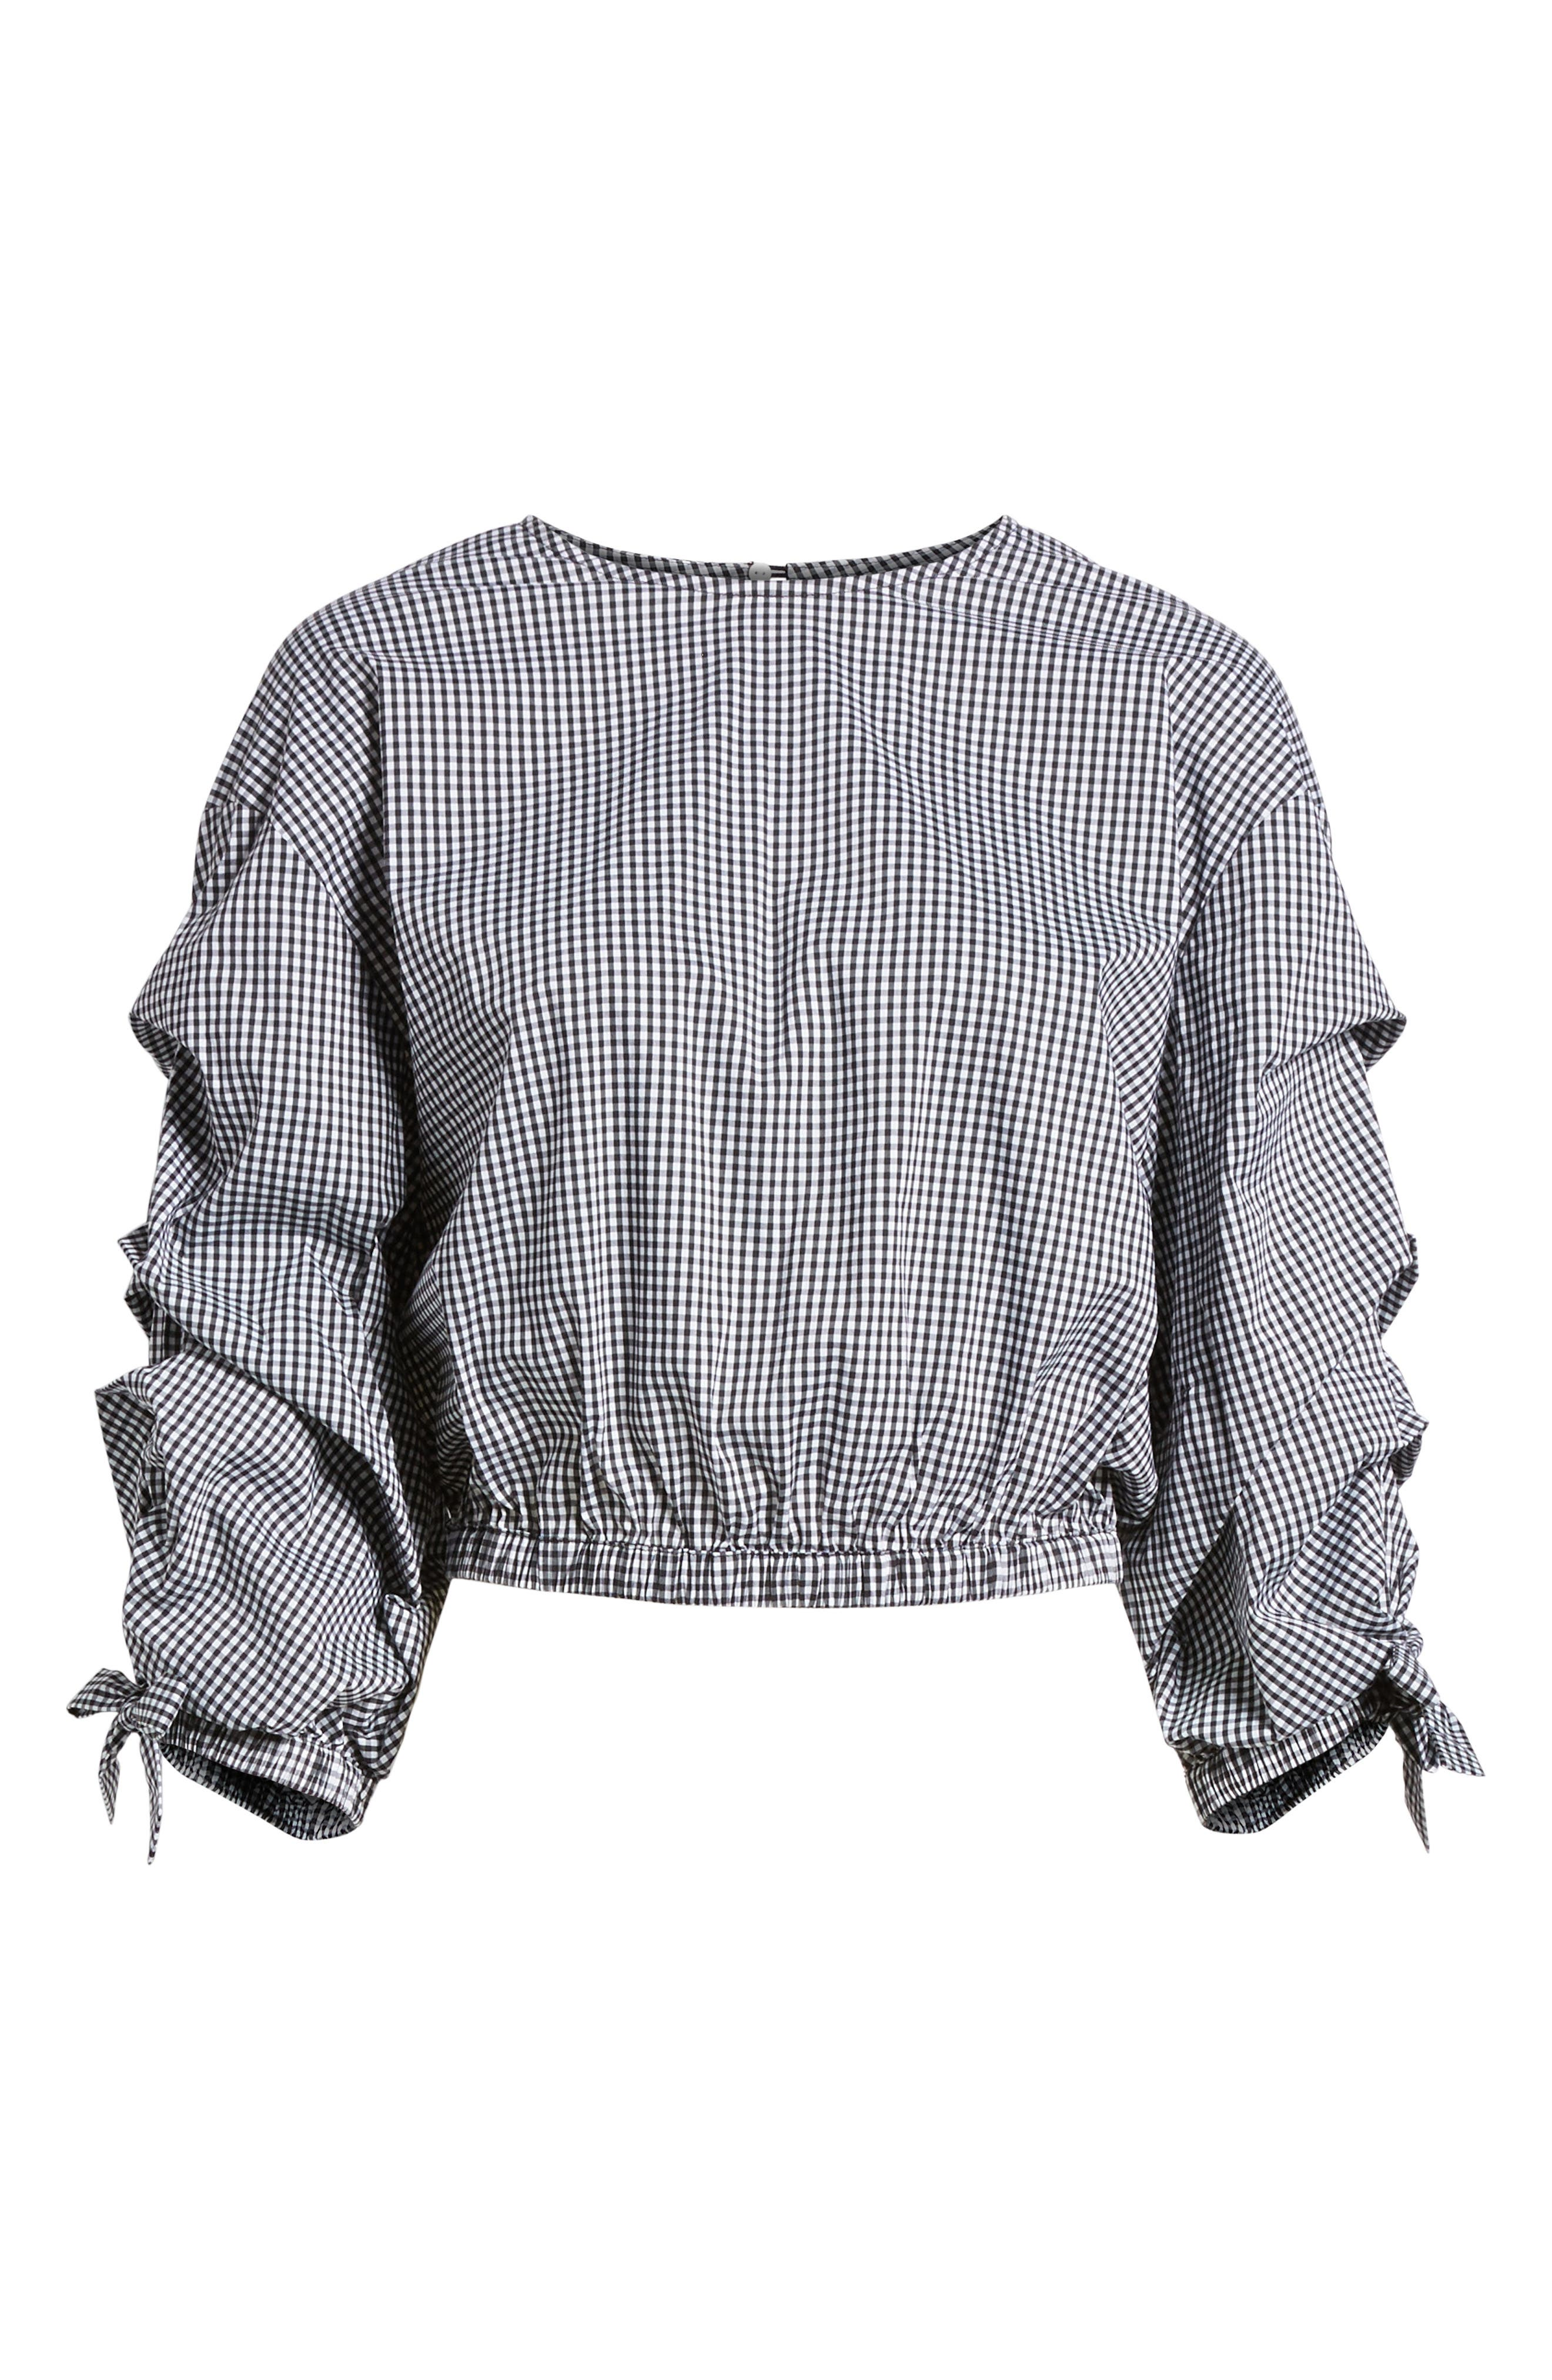 Bishop + Young Ruched Sleeve Blouse,                             Alternate thumbnail 6, color,                             Gingham